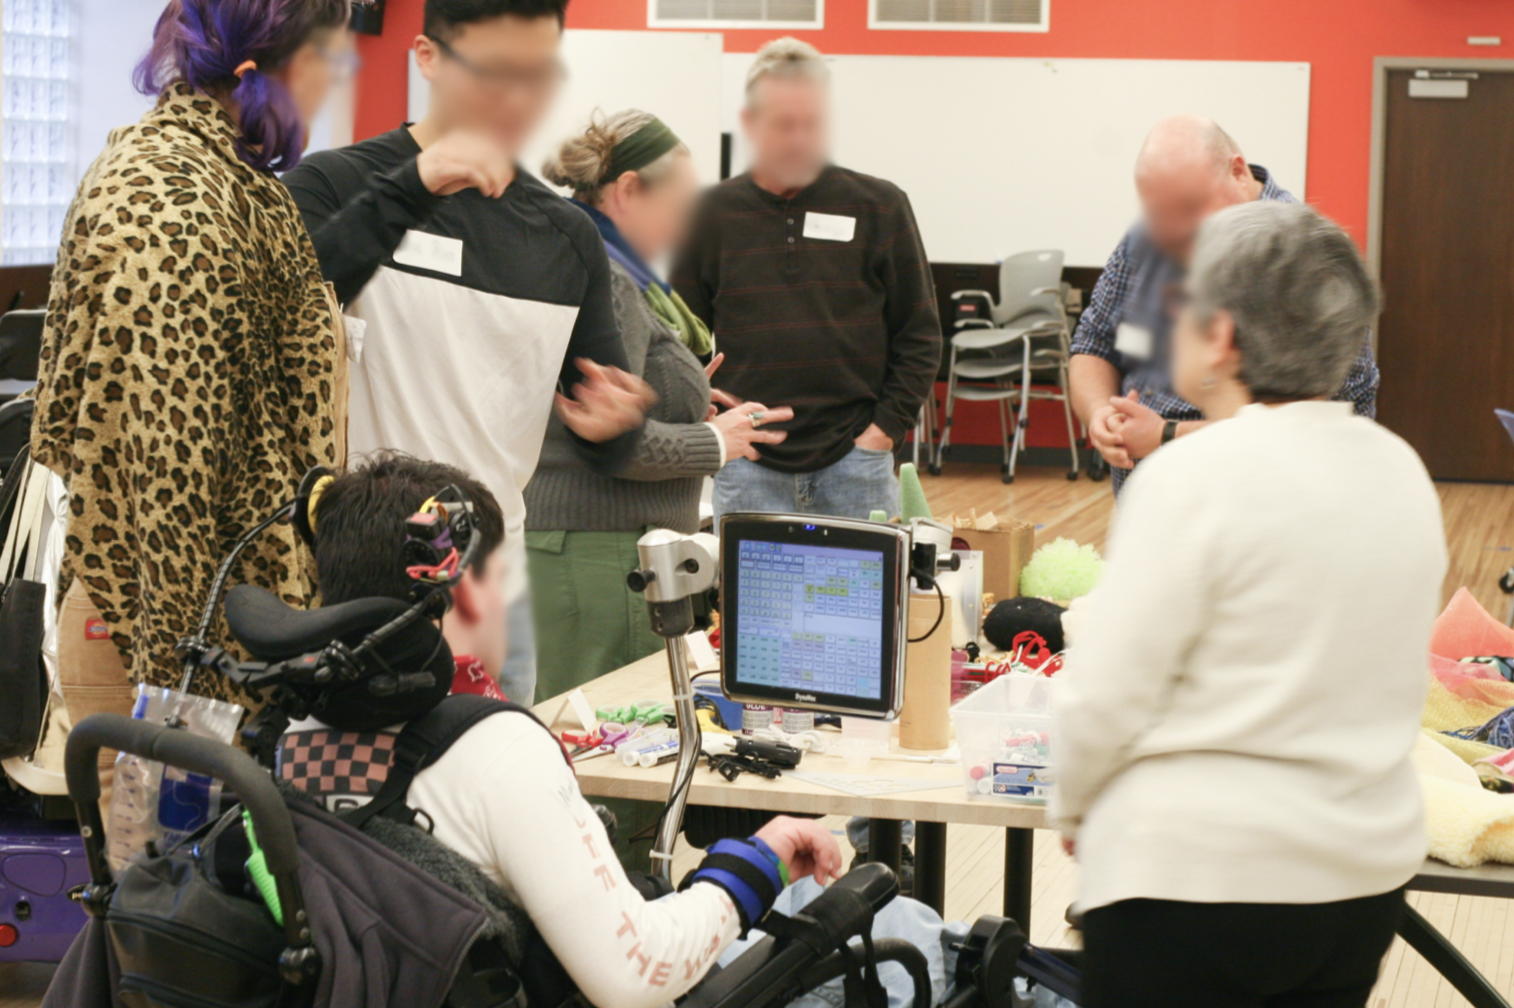 A photograph taken at a workshop with a person using an AAC device, her close conversational partner, and puppeteers. All participants stand around a table full of craft supplies and are engaged in coversation.